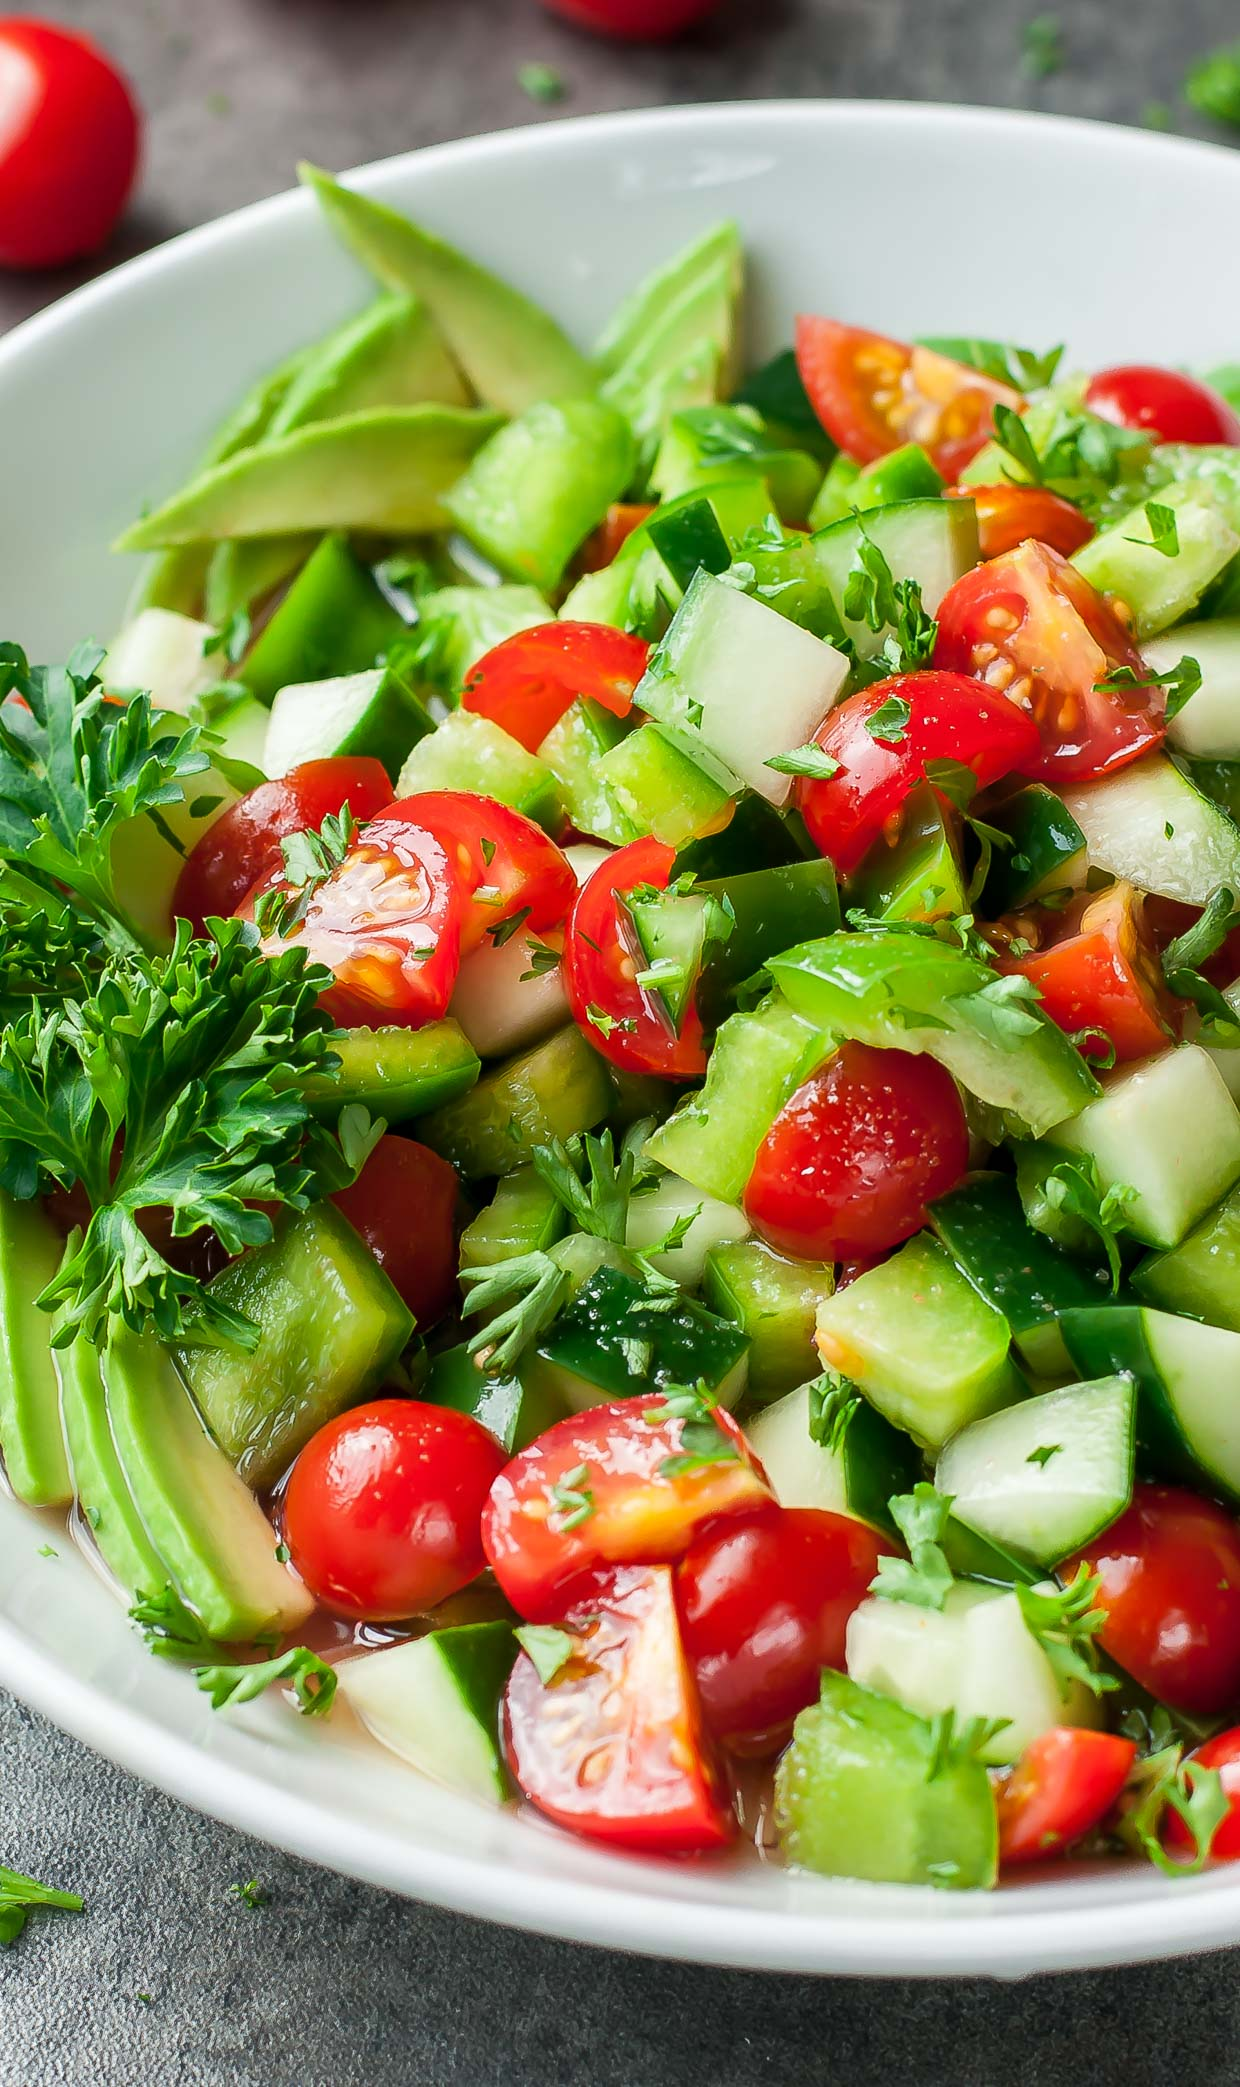 This healthy Tomato Cucumber Avocado Salad is light, fresh, and full of flavor! Vegan + Paleo + Whole30 + Low-Carb + Gluten-Free